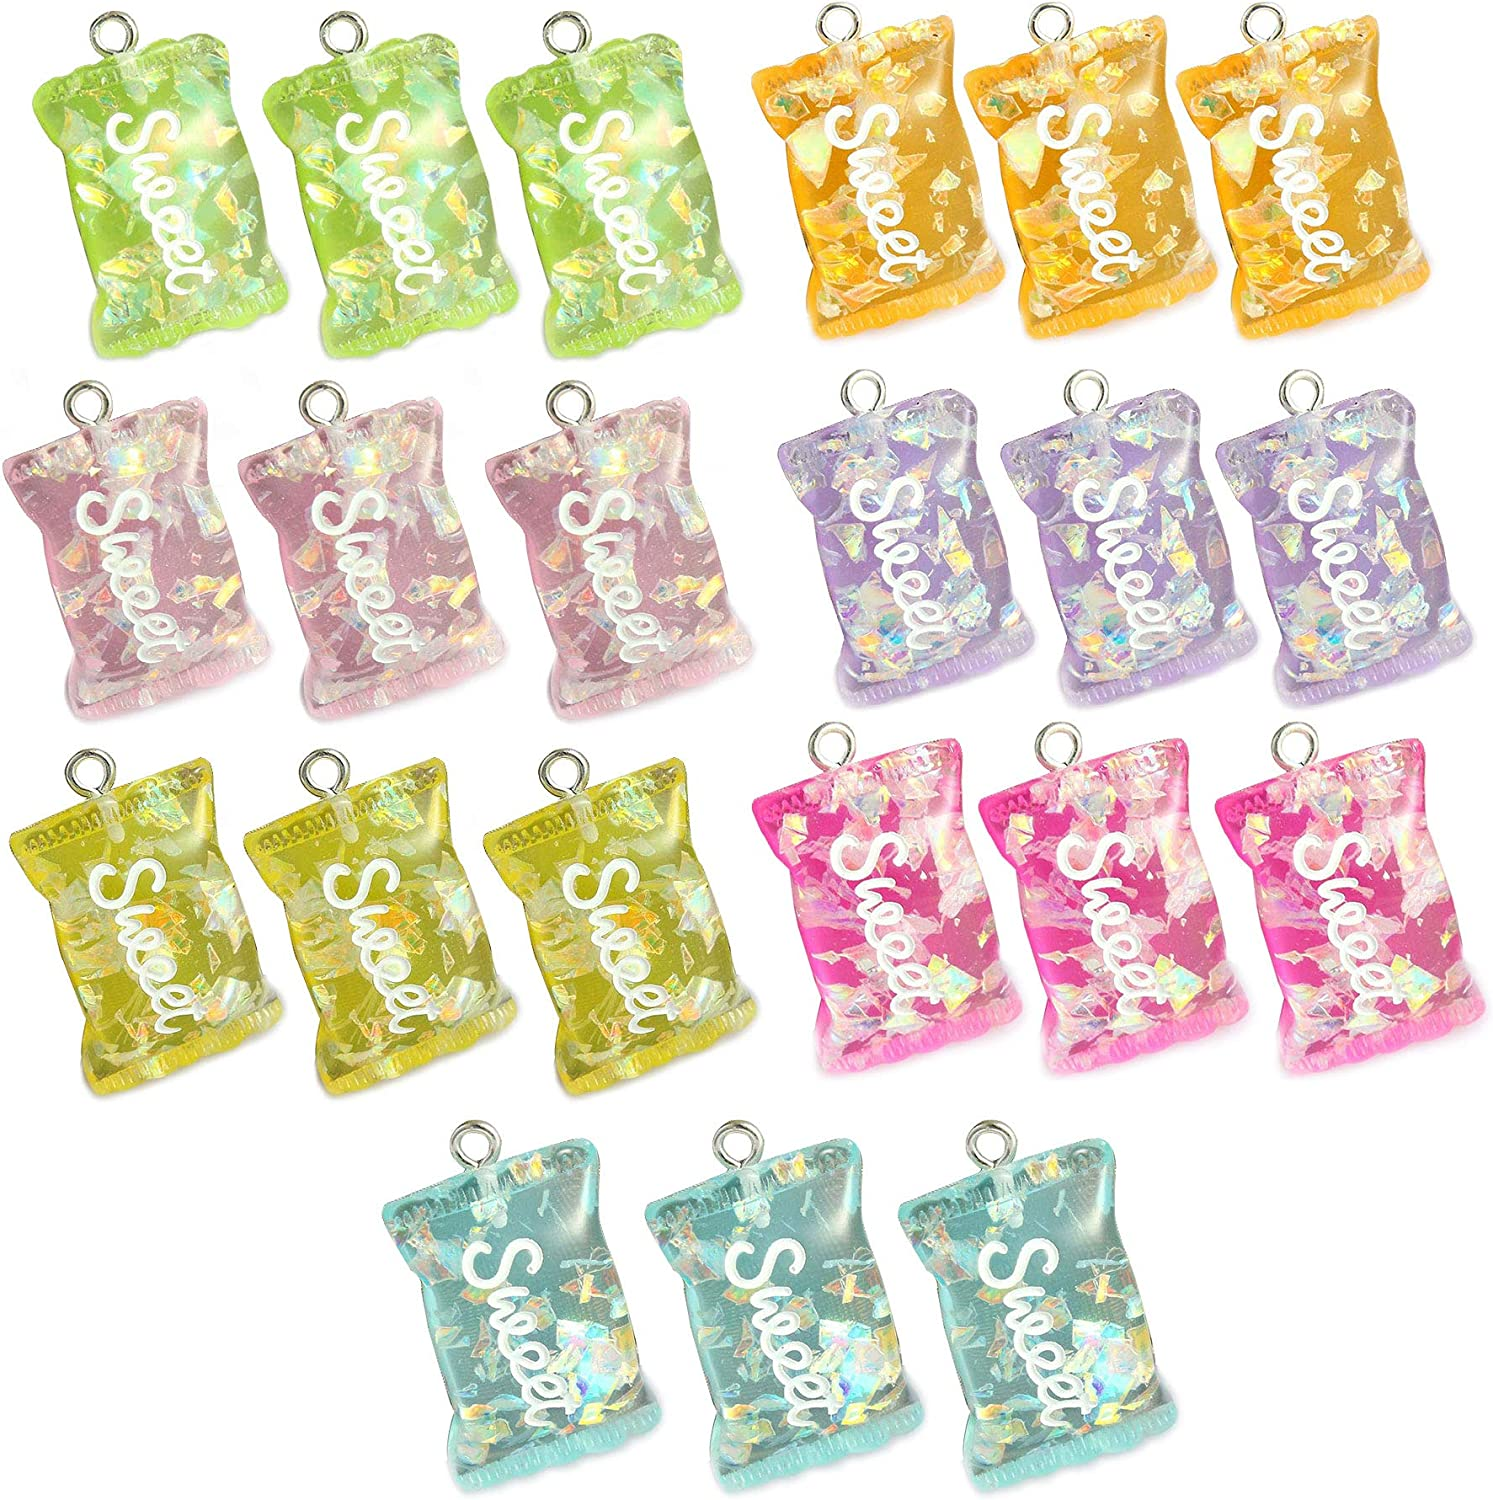 21 Pcs Colorful Sweet Candy Pendant Charms Erring Bracelet DIY Jewelry Making Pendants for Chirld Girl